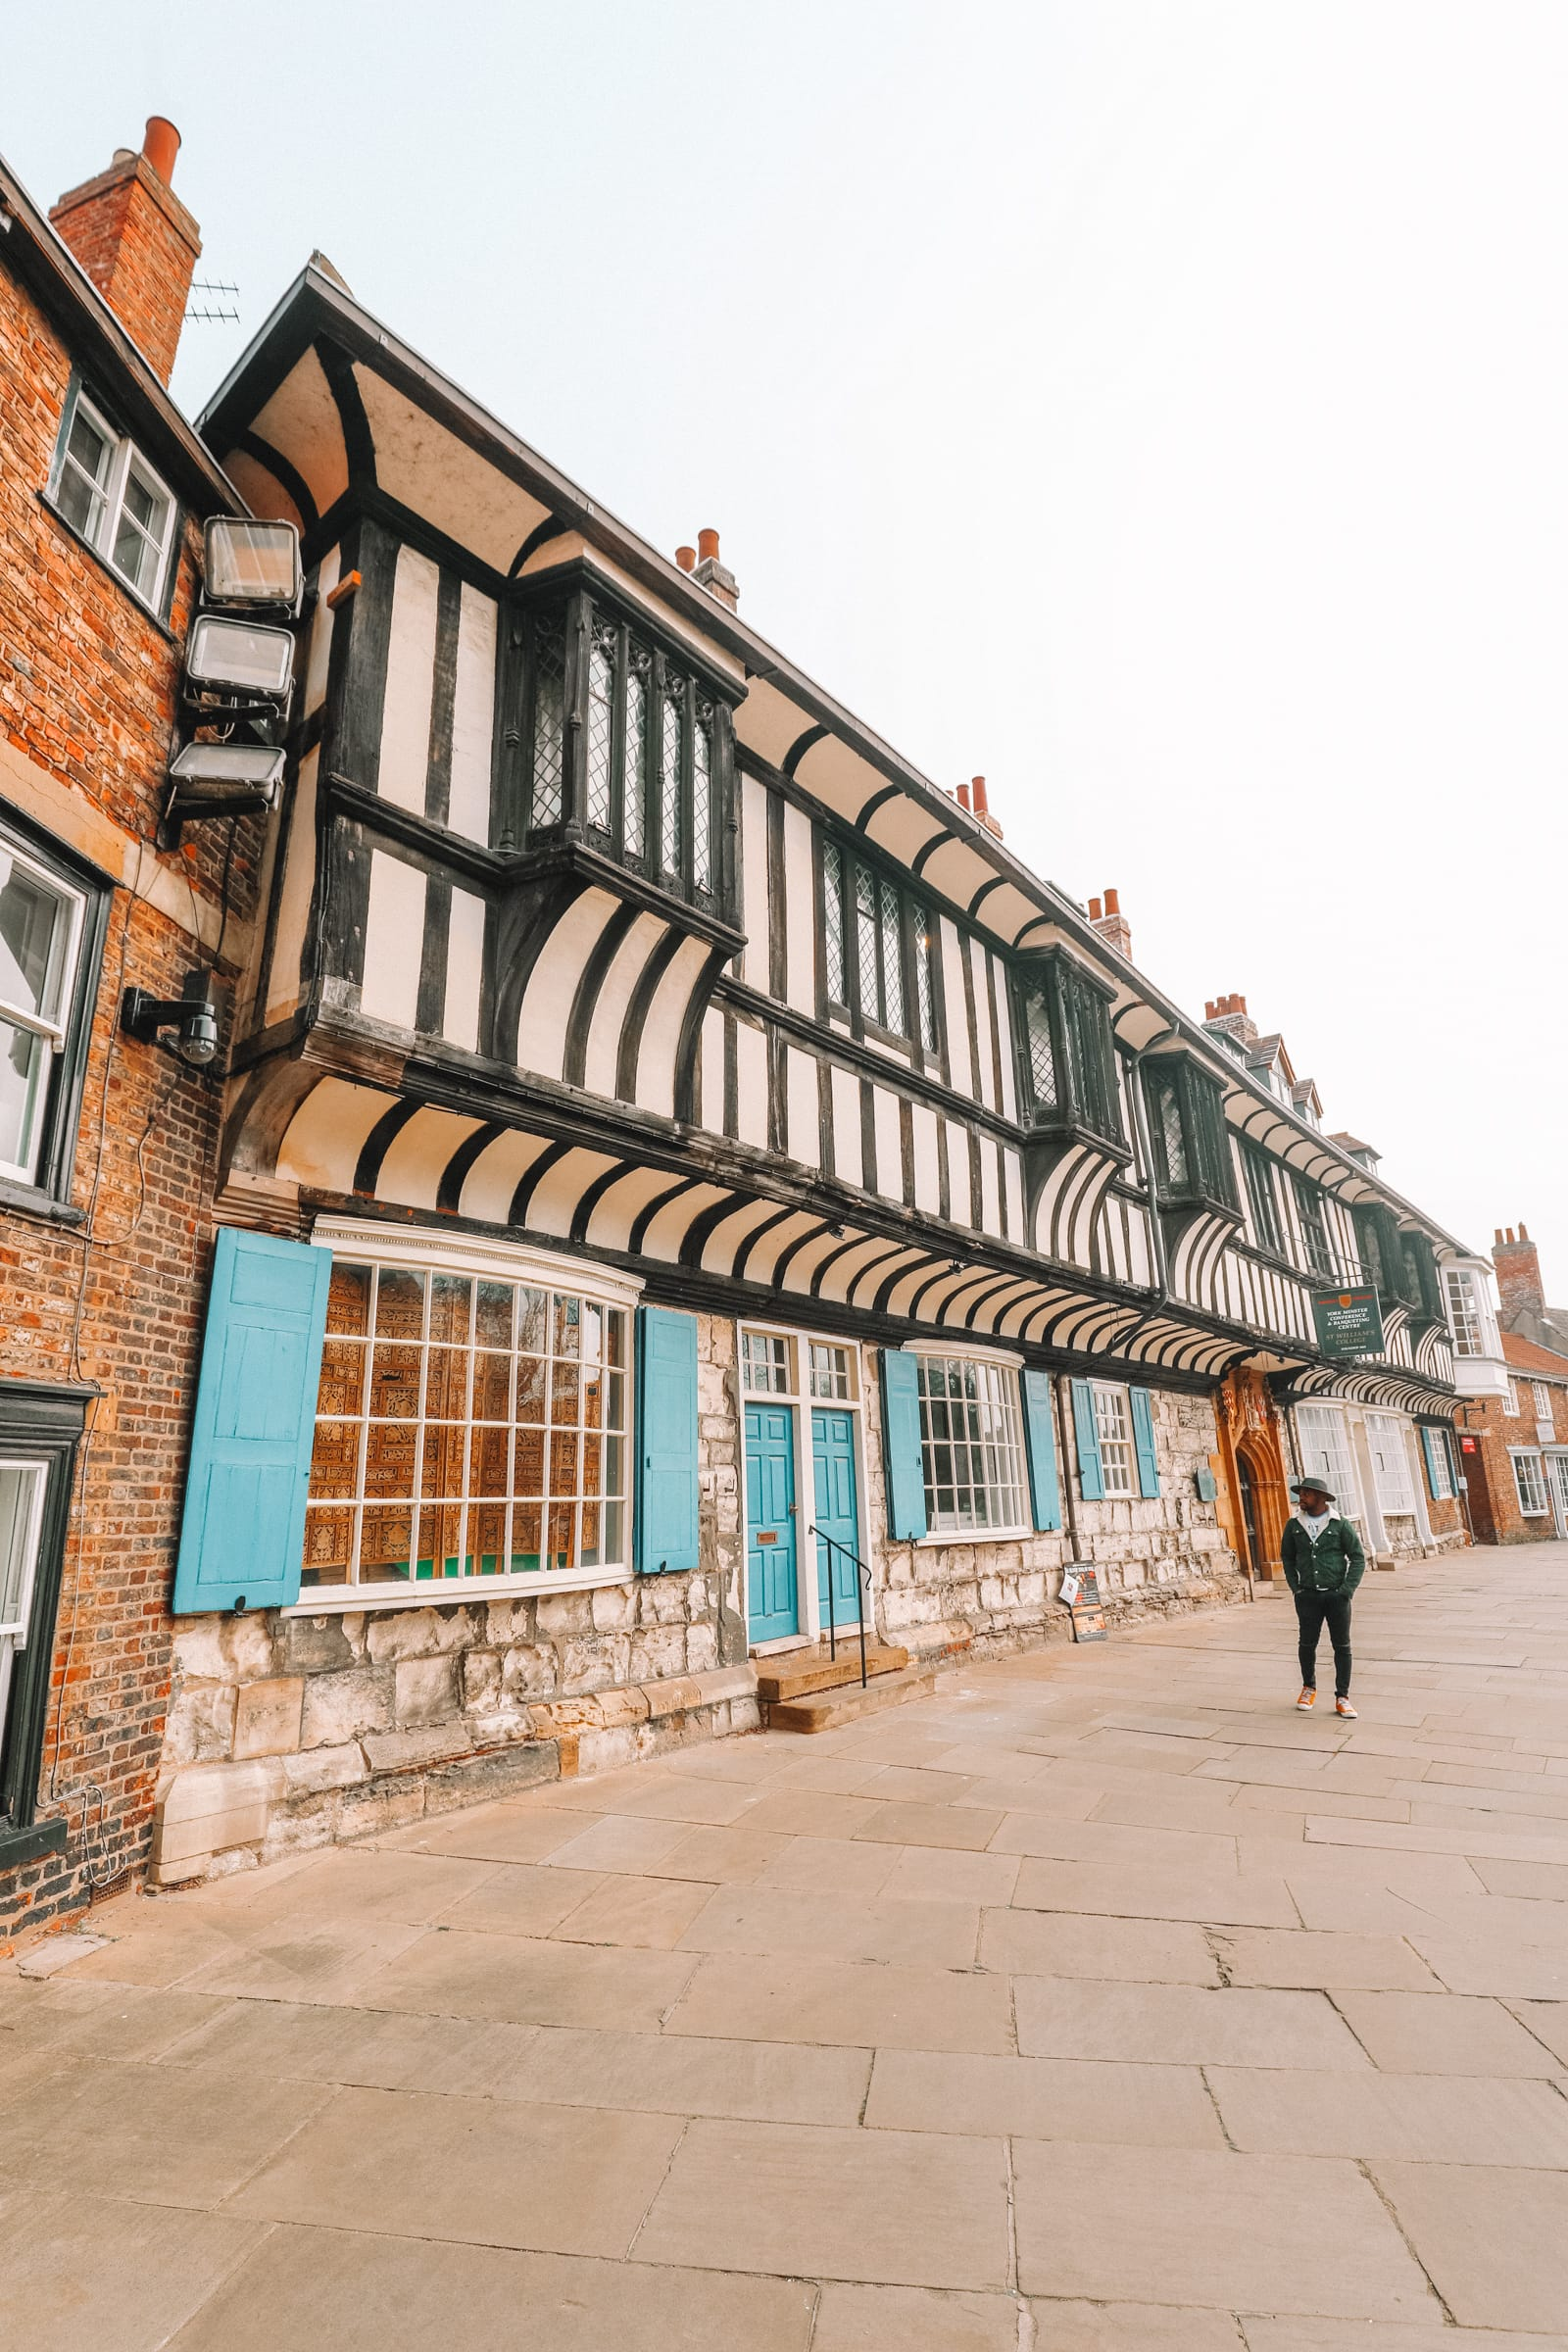 Taking A Step Back Into The Past In York, England (1)